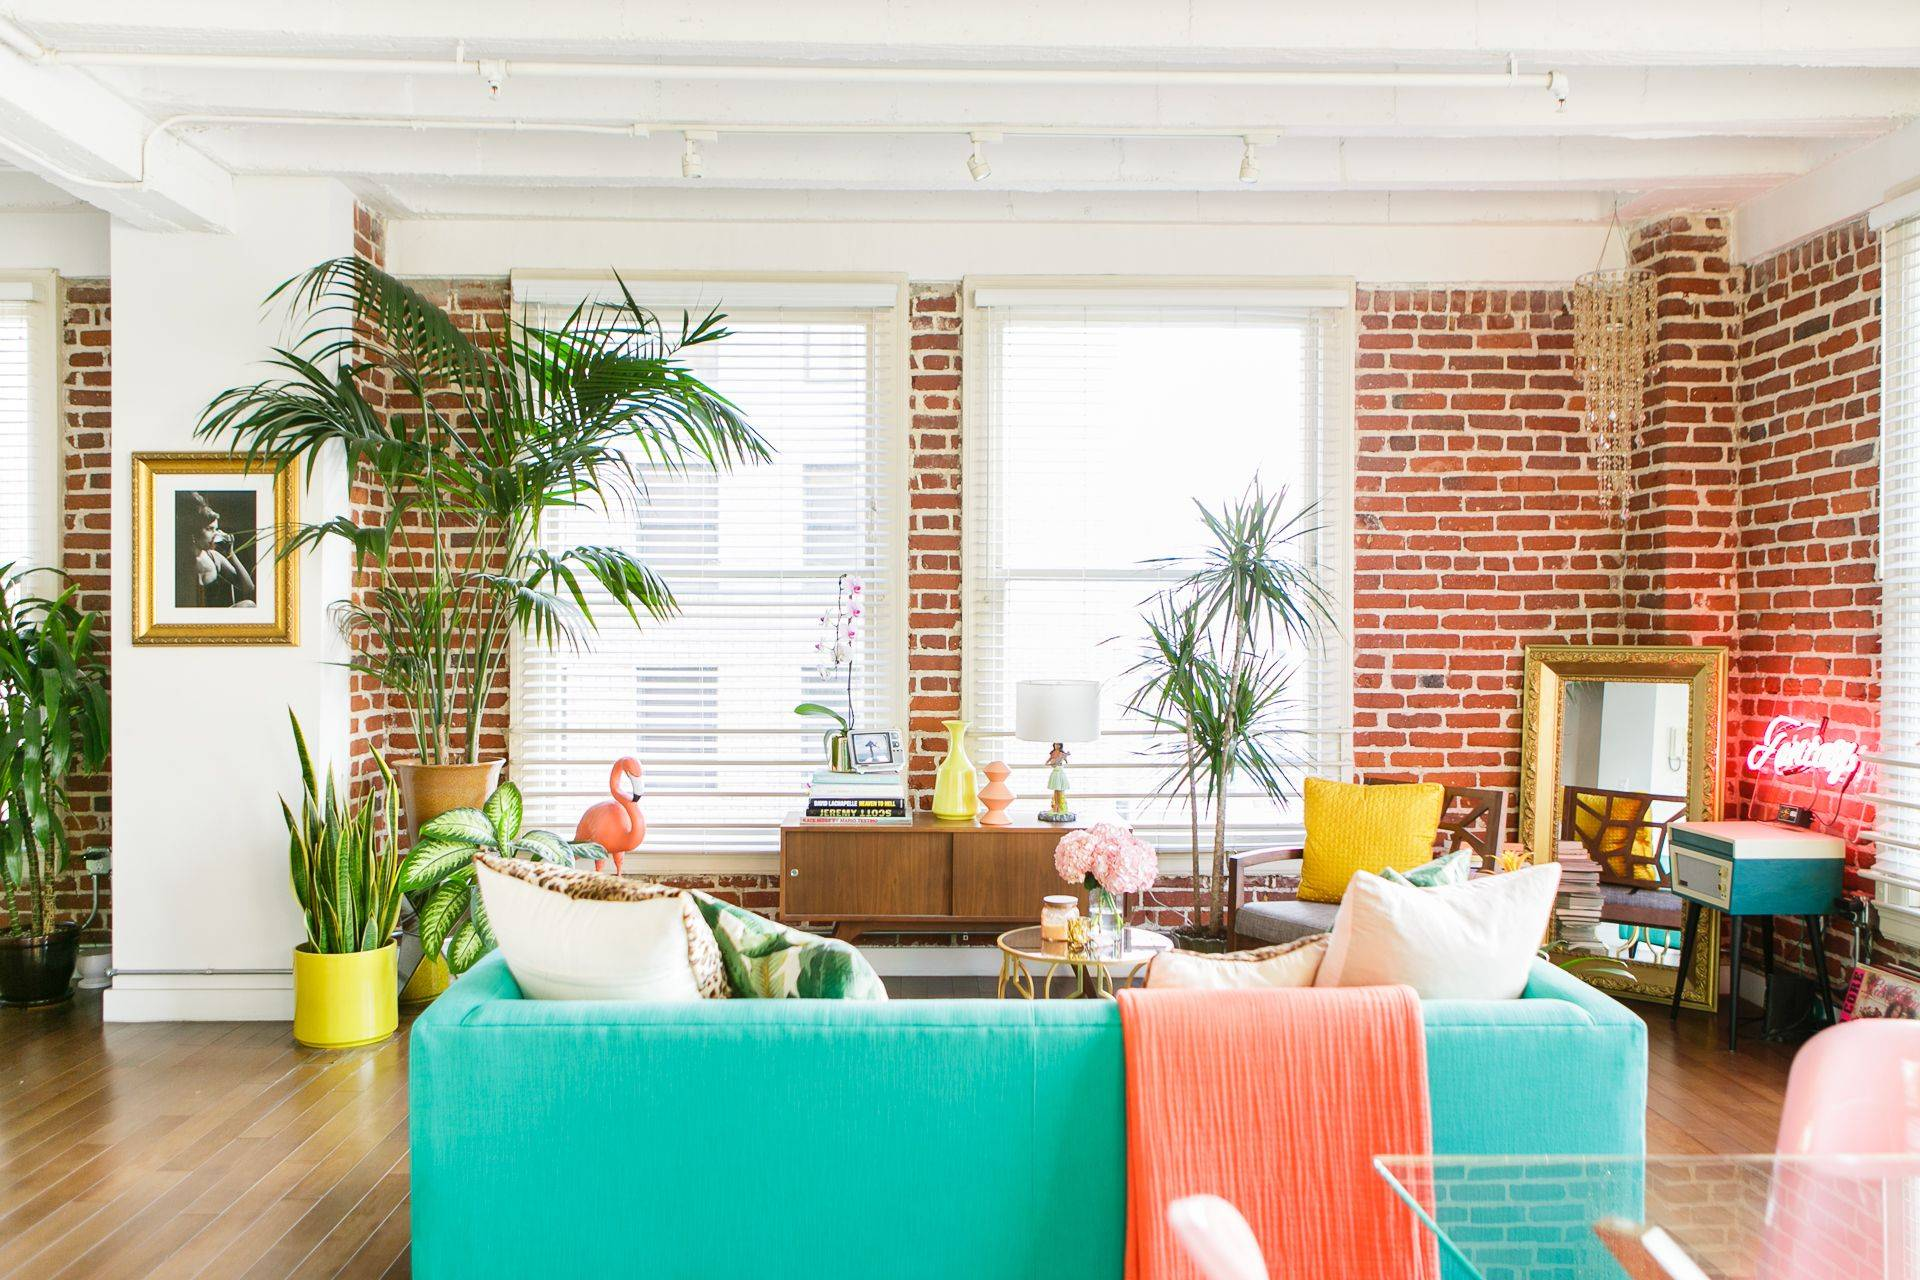 Tiffany Blue Turquoise Teal Aqua Couch Bright Open Living Room Red Brick Interior Wall Areca Palm Tree Indoor Decor